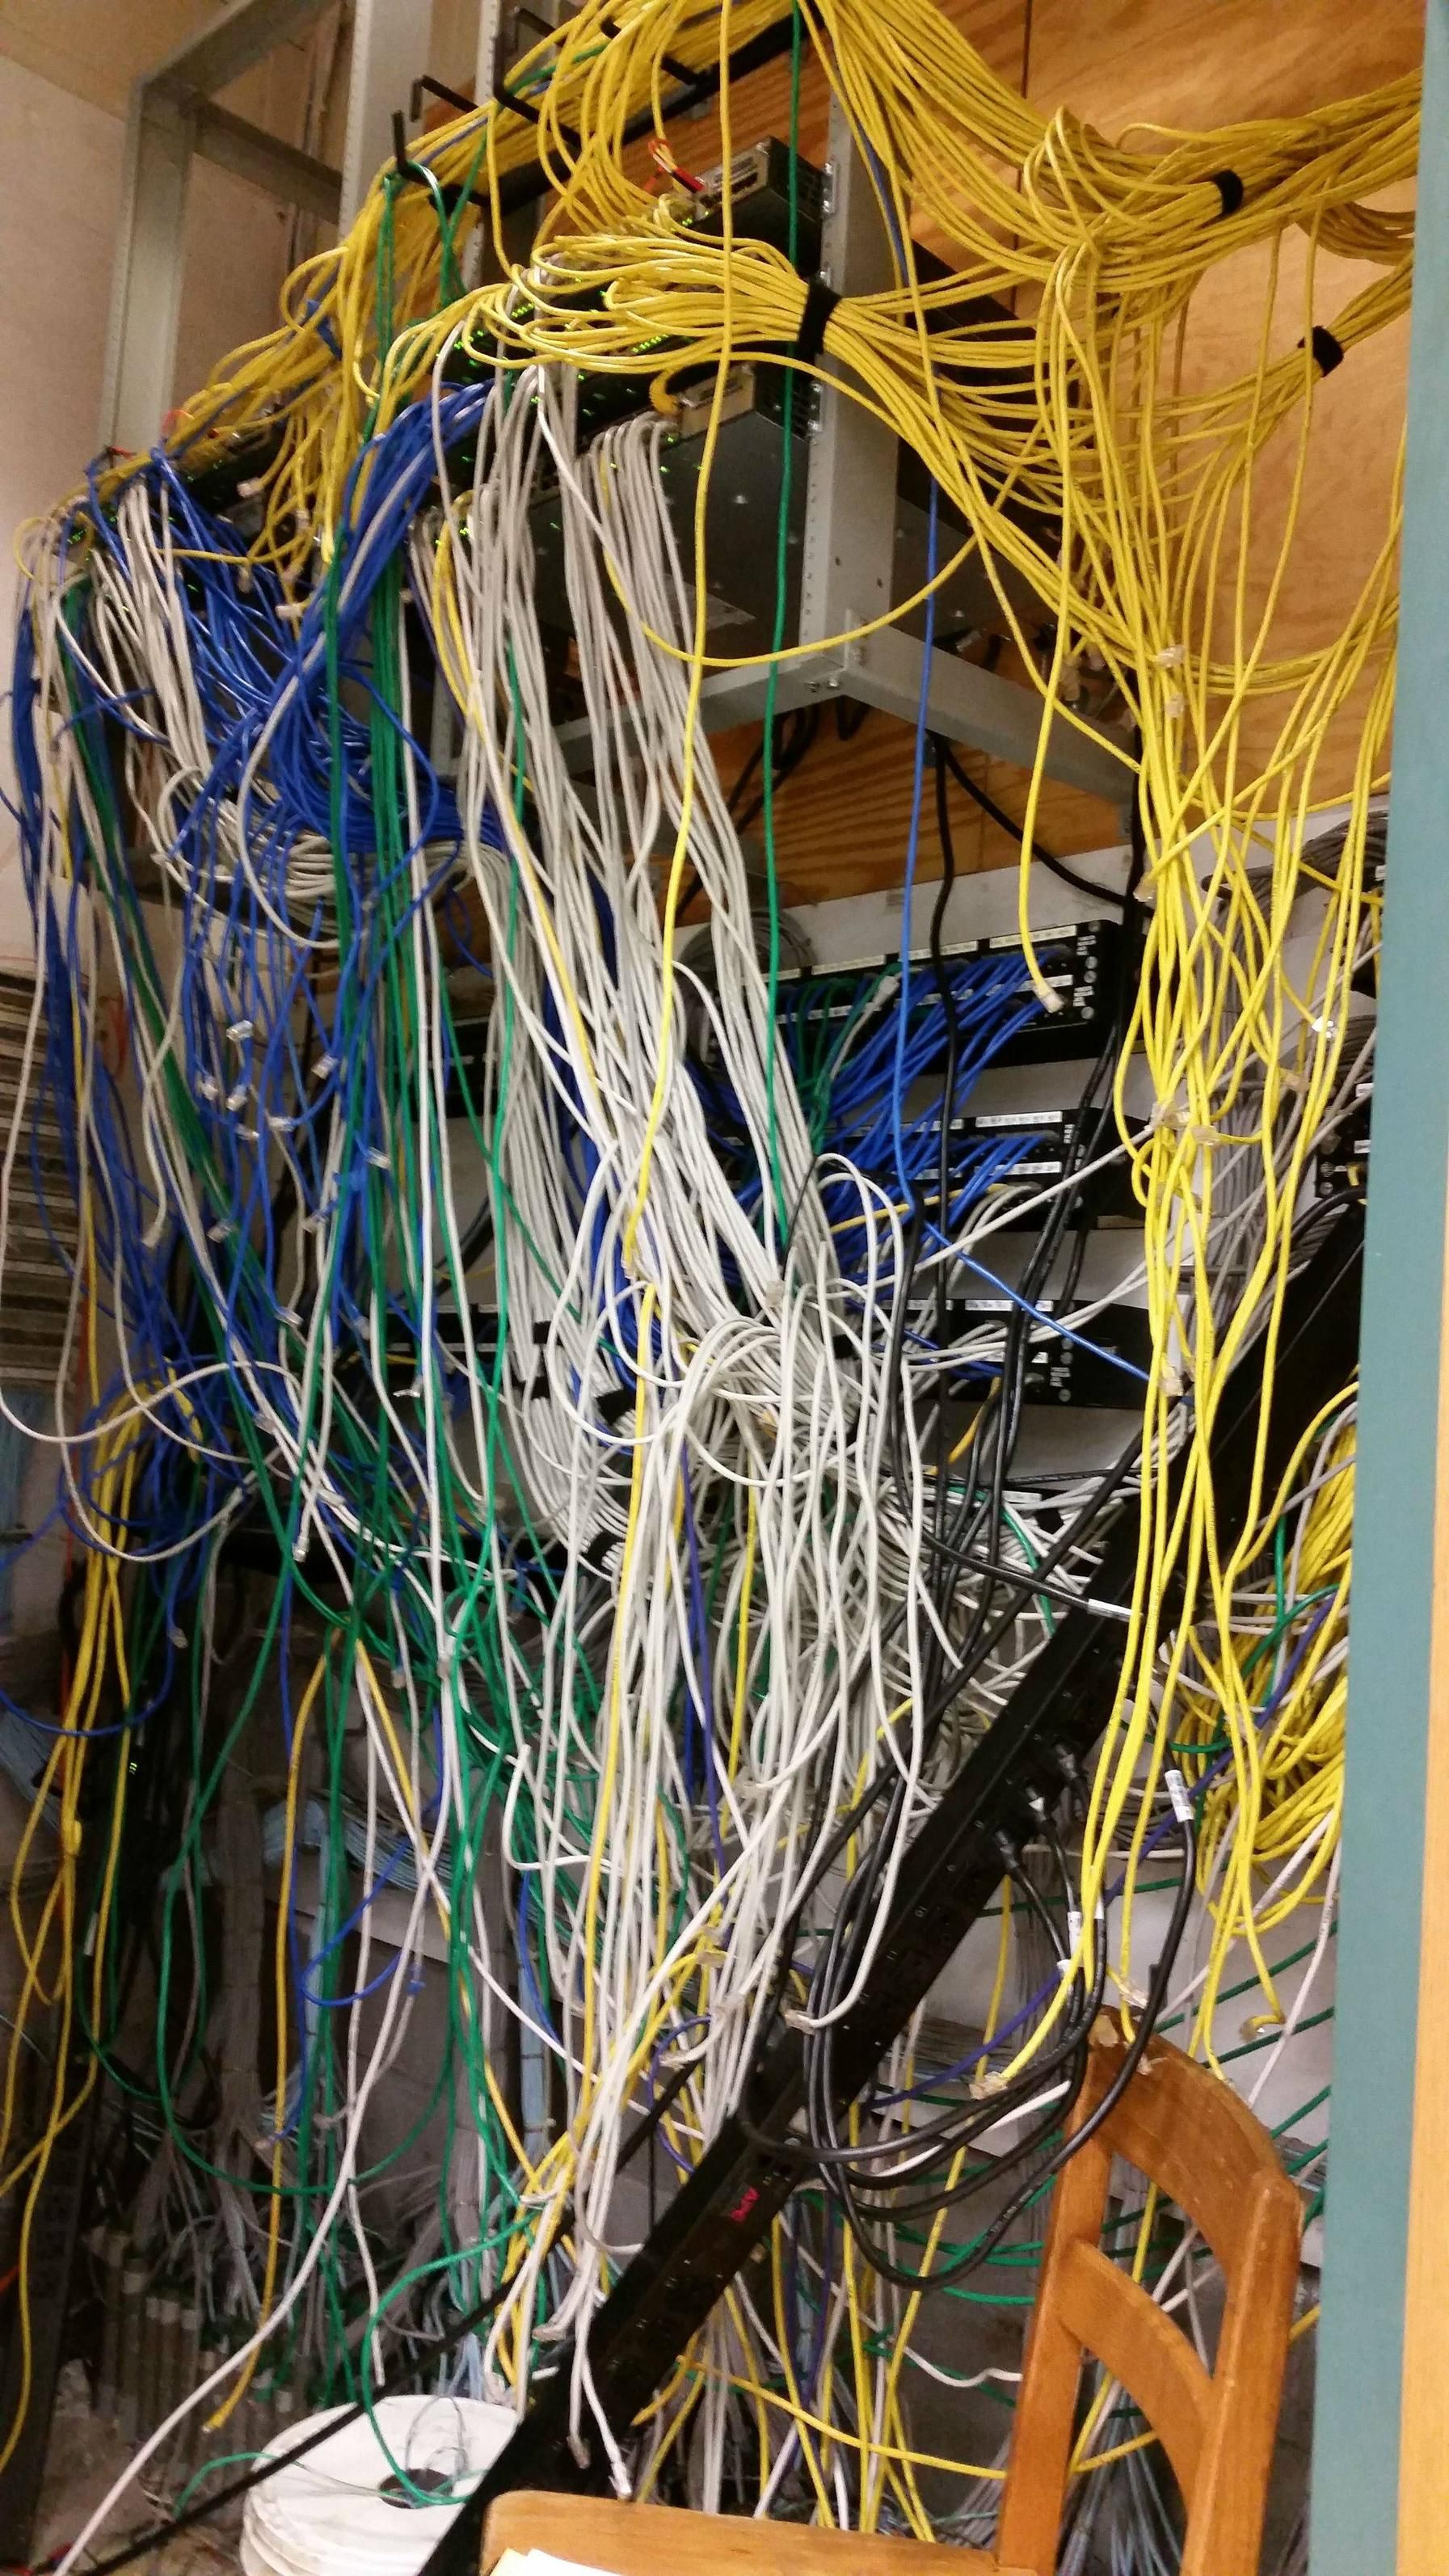 medium resolution of very bad wiring server room very bad network cable plumbing rats